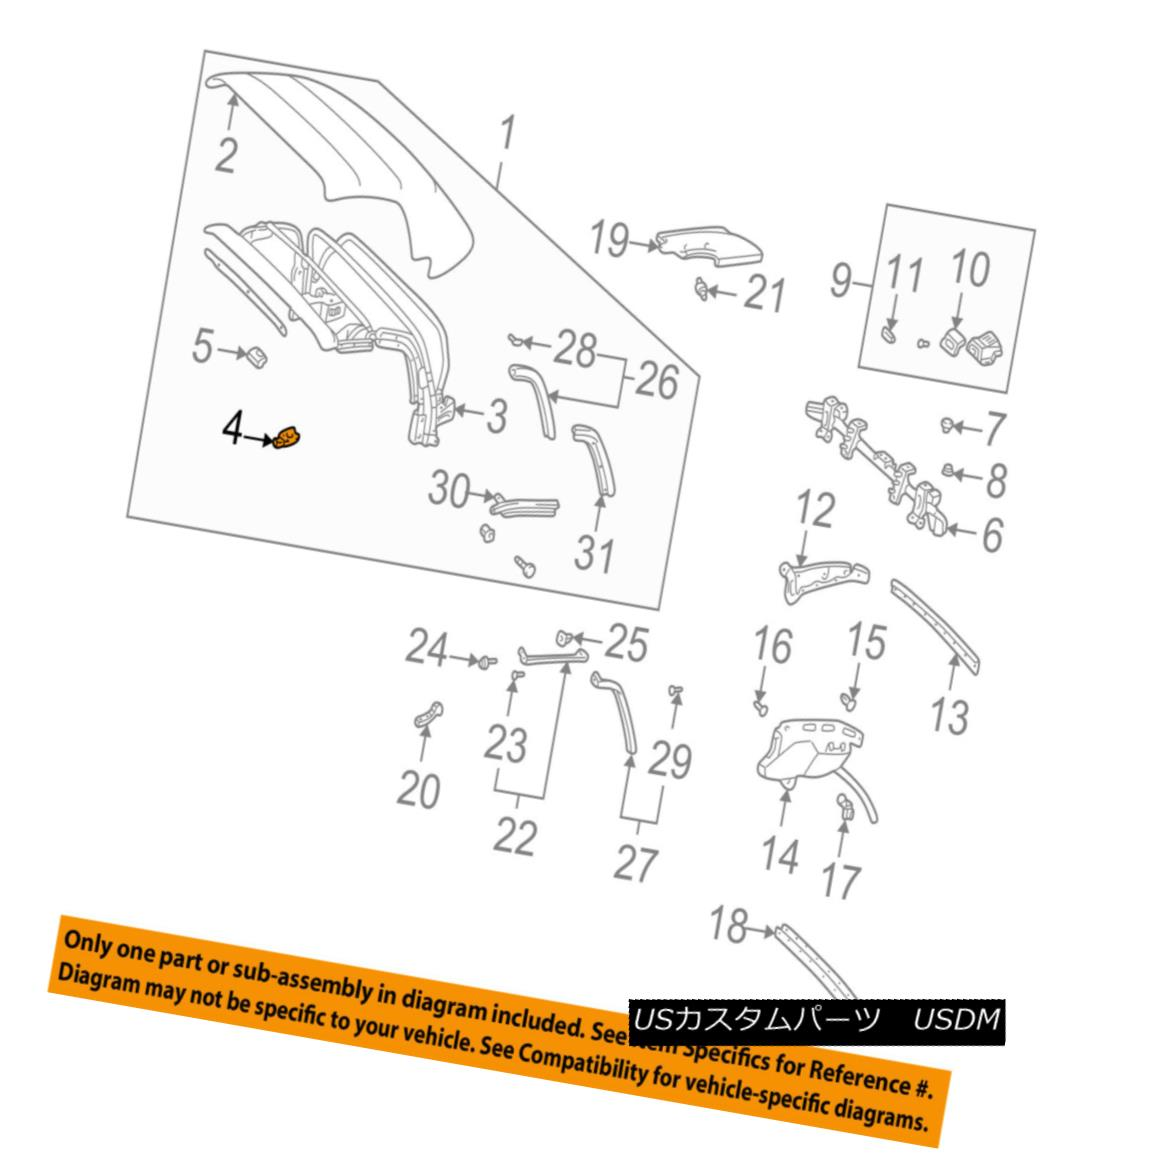 幌・ソフトトップ TOYOTA OEM 00-05 MR2 Spyder Convertible/soft Top-Lock Left 6934017010 TOYOTA OEM 00-05 MR2 Spyder Convertible / so ftトップロック左6934017010